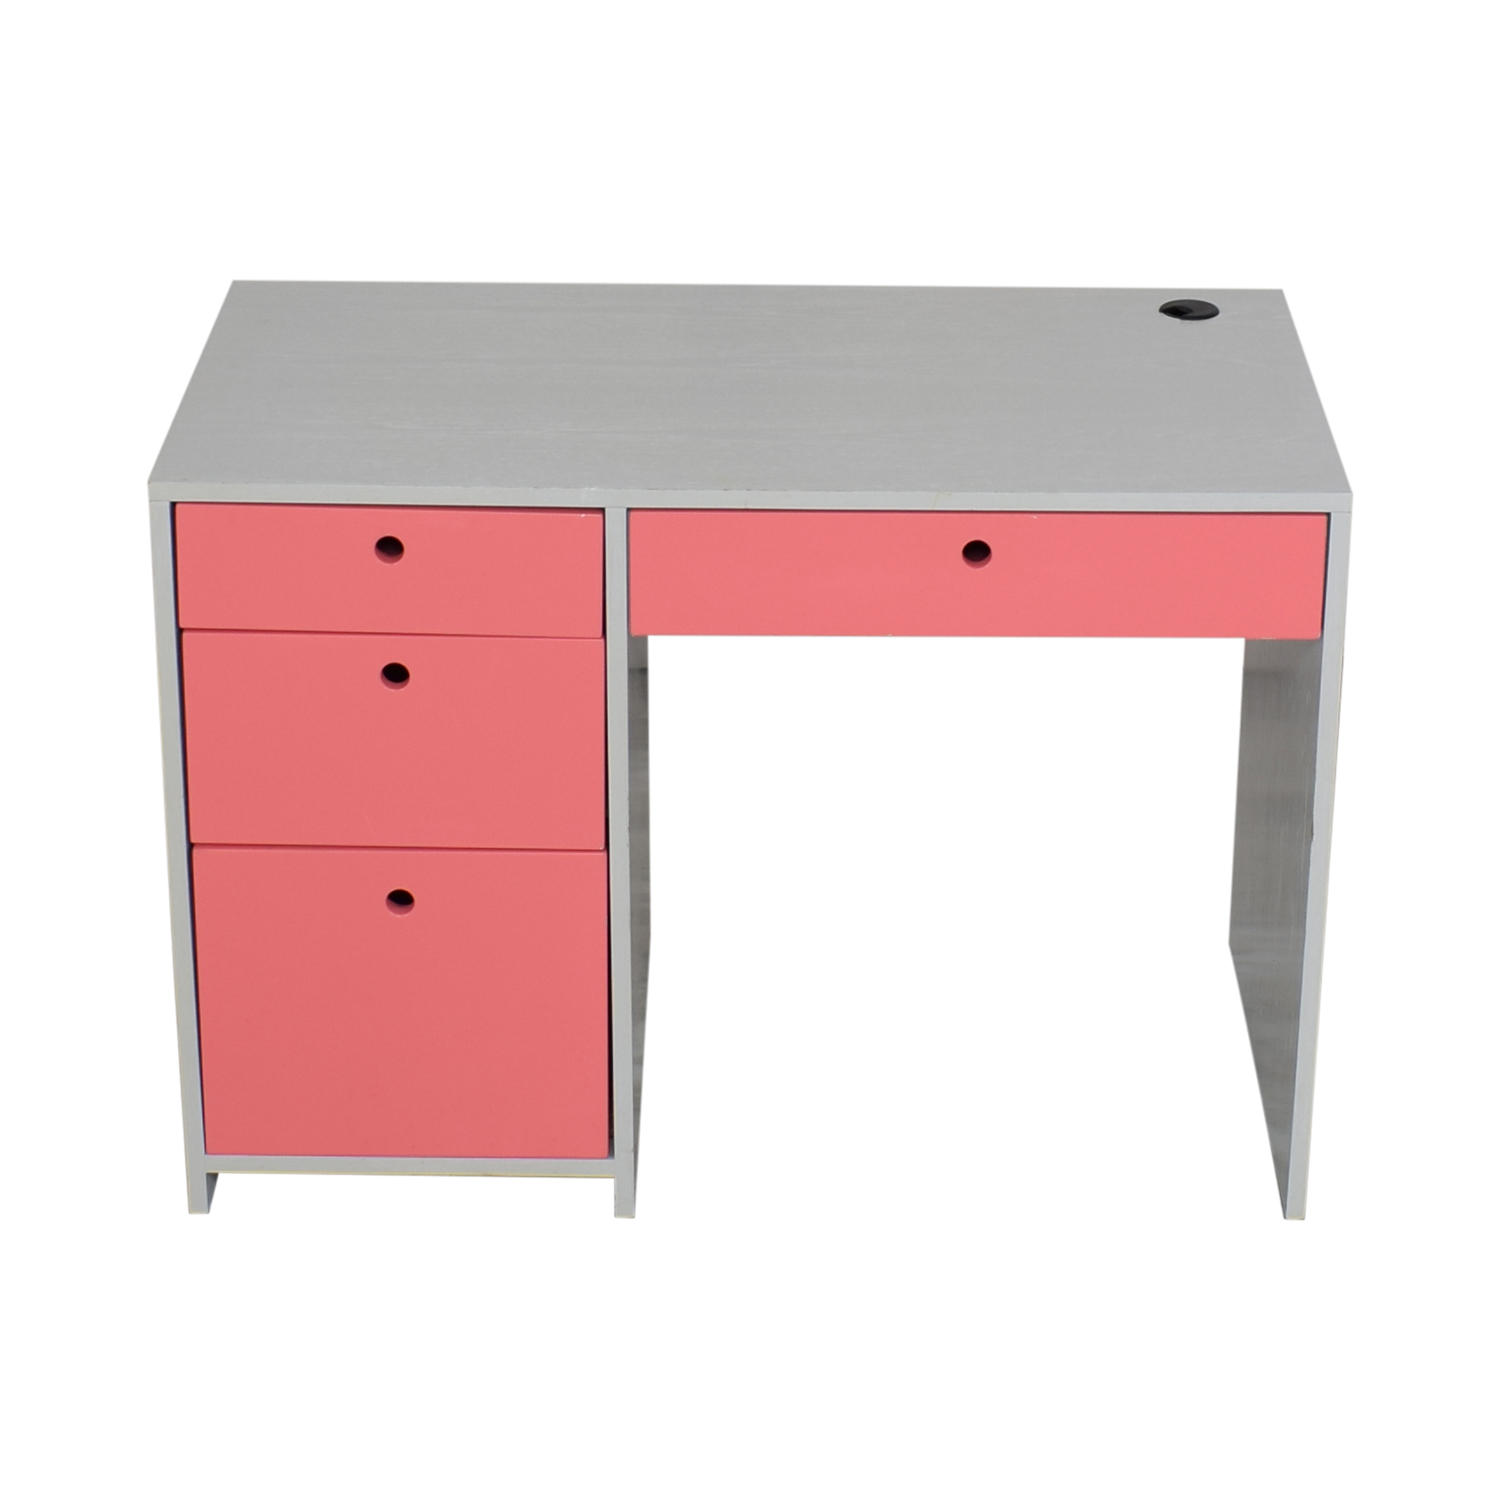 Ducduc Ducduc Alex Desk price